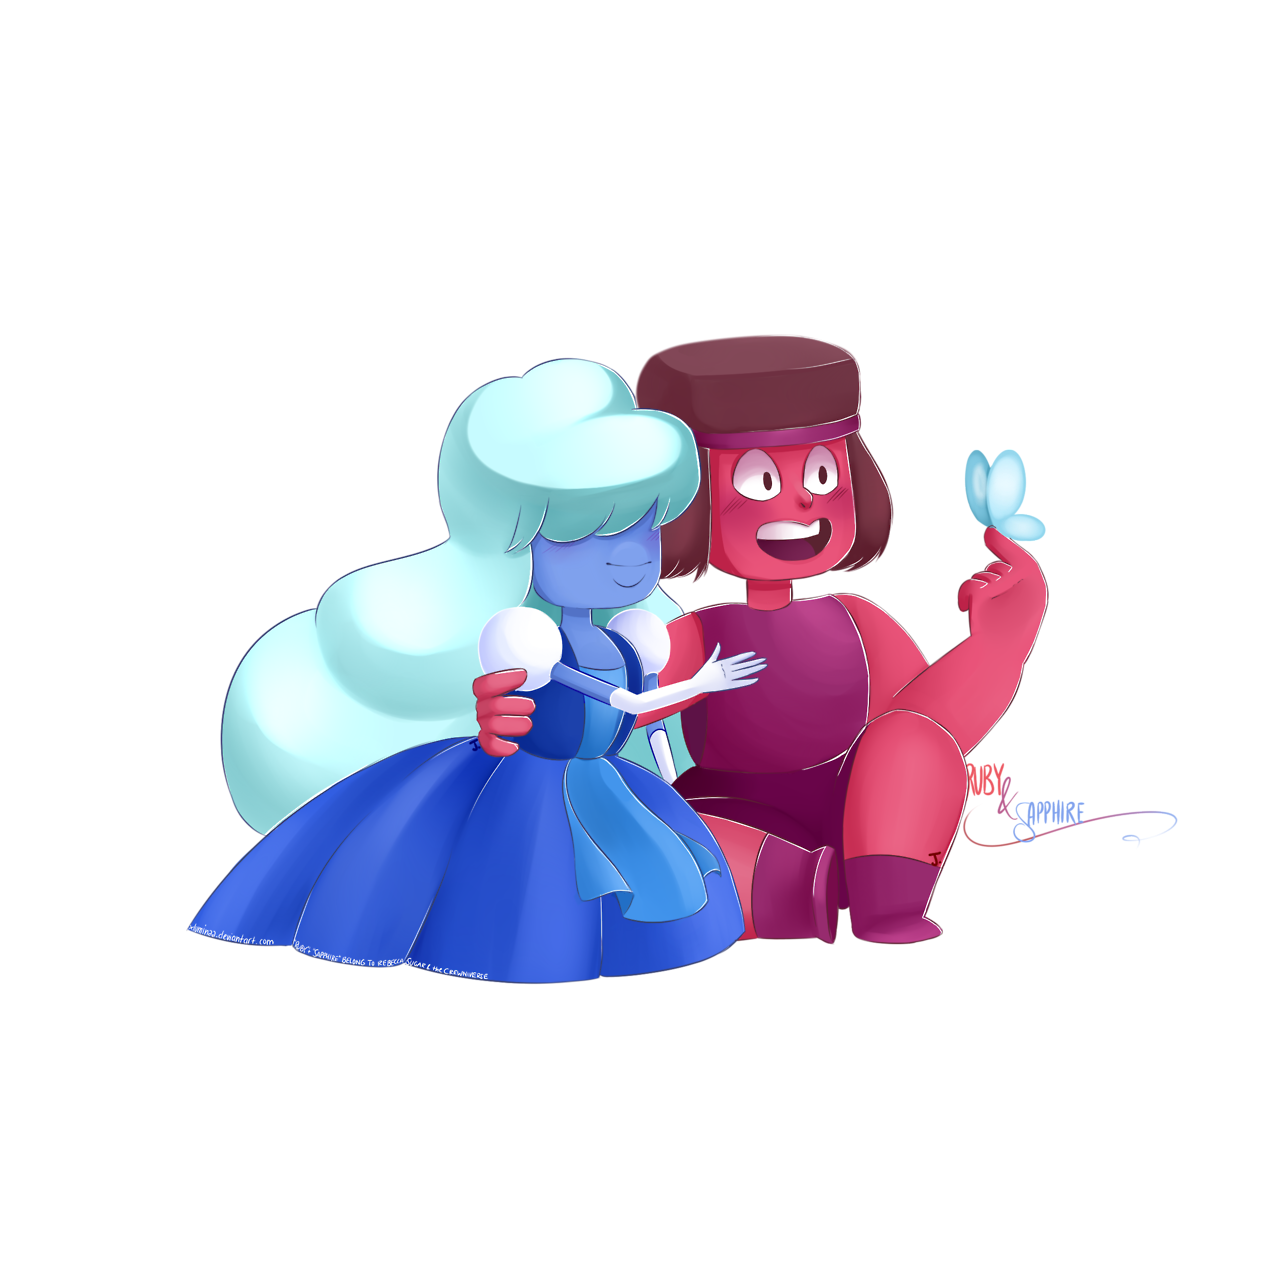 Ruby & Sapphire fanart, because I adore them so much! If you want to take a better look at it, go visit my deviantART page: xluminaa.deviantart.com EDIT: Y'all are awesome, this is the first time...